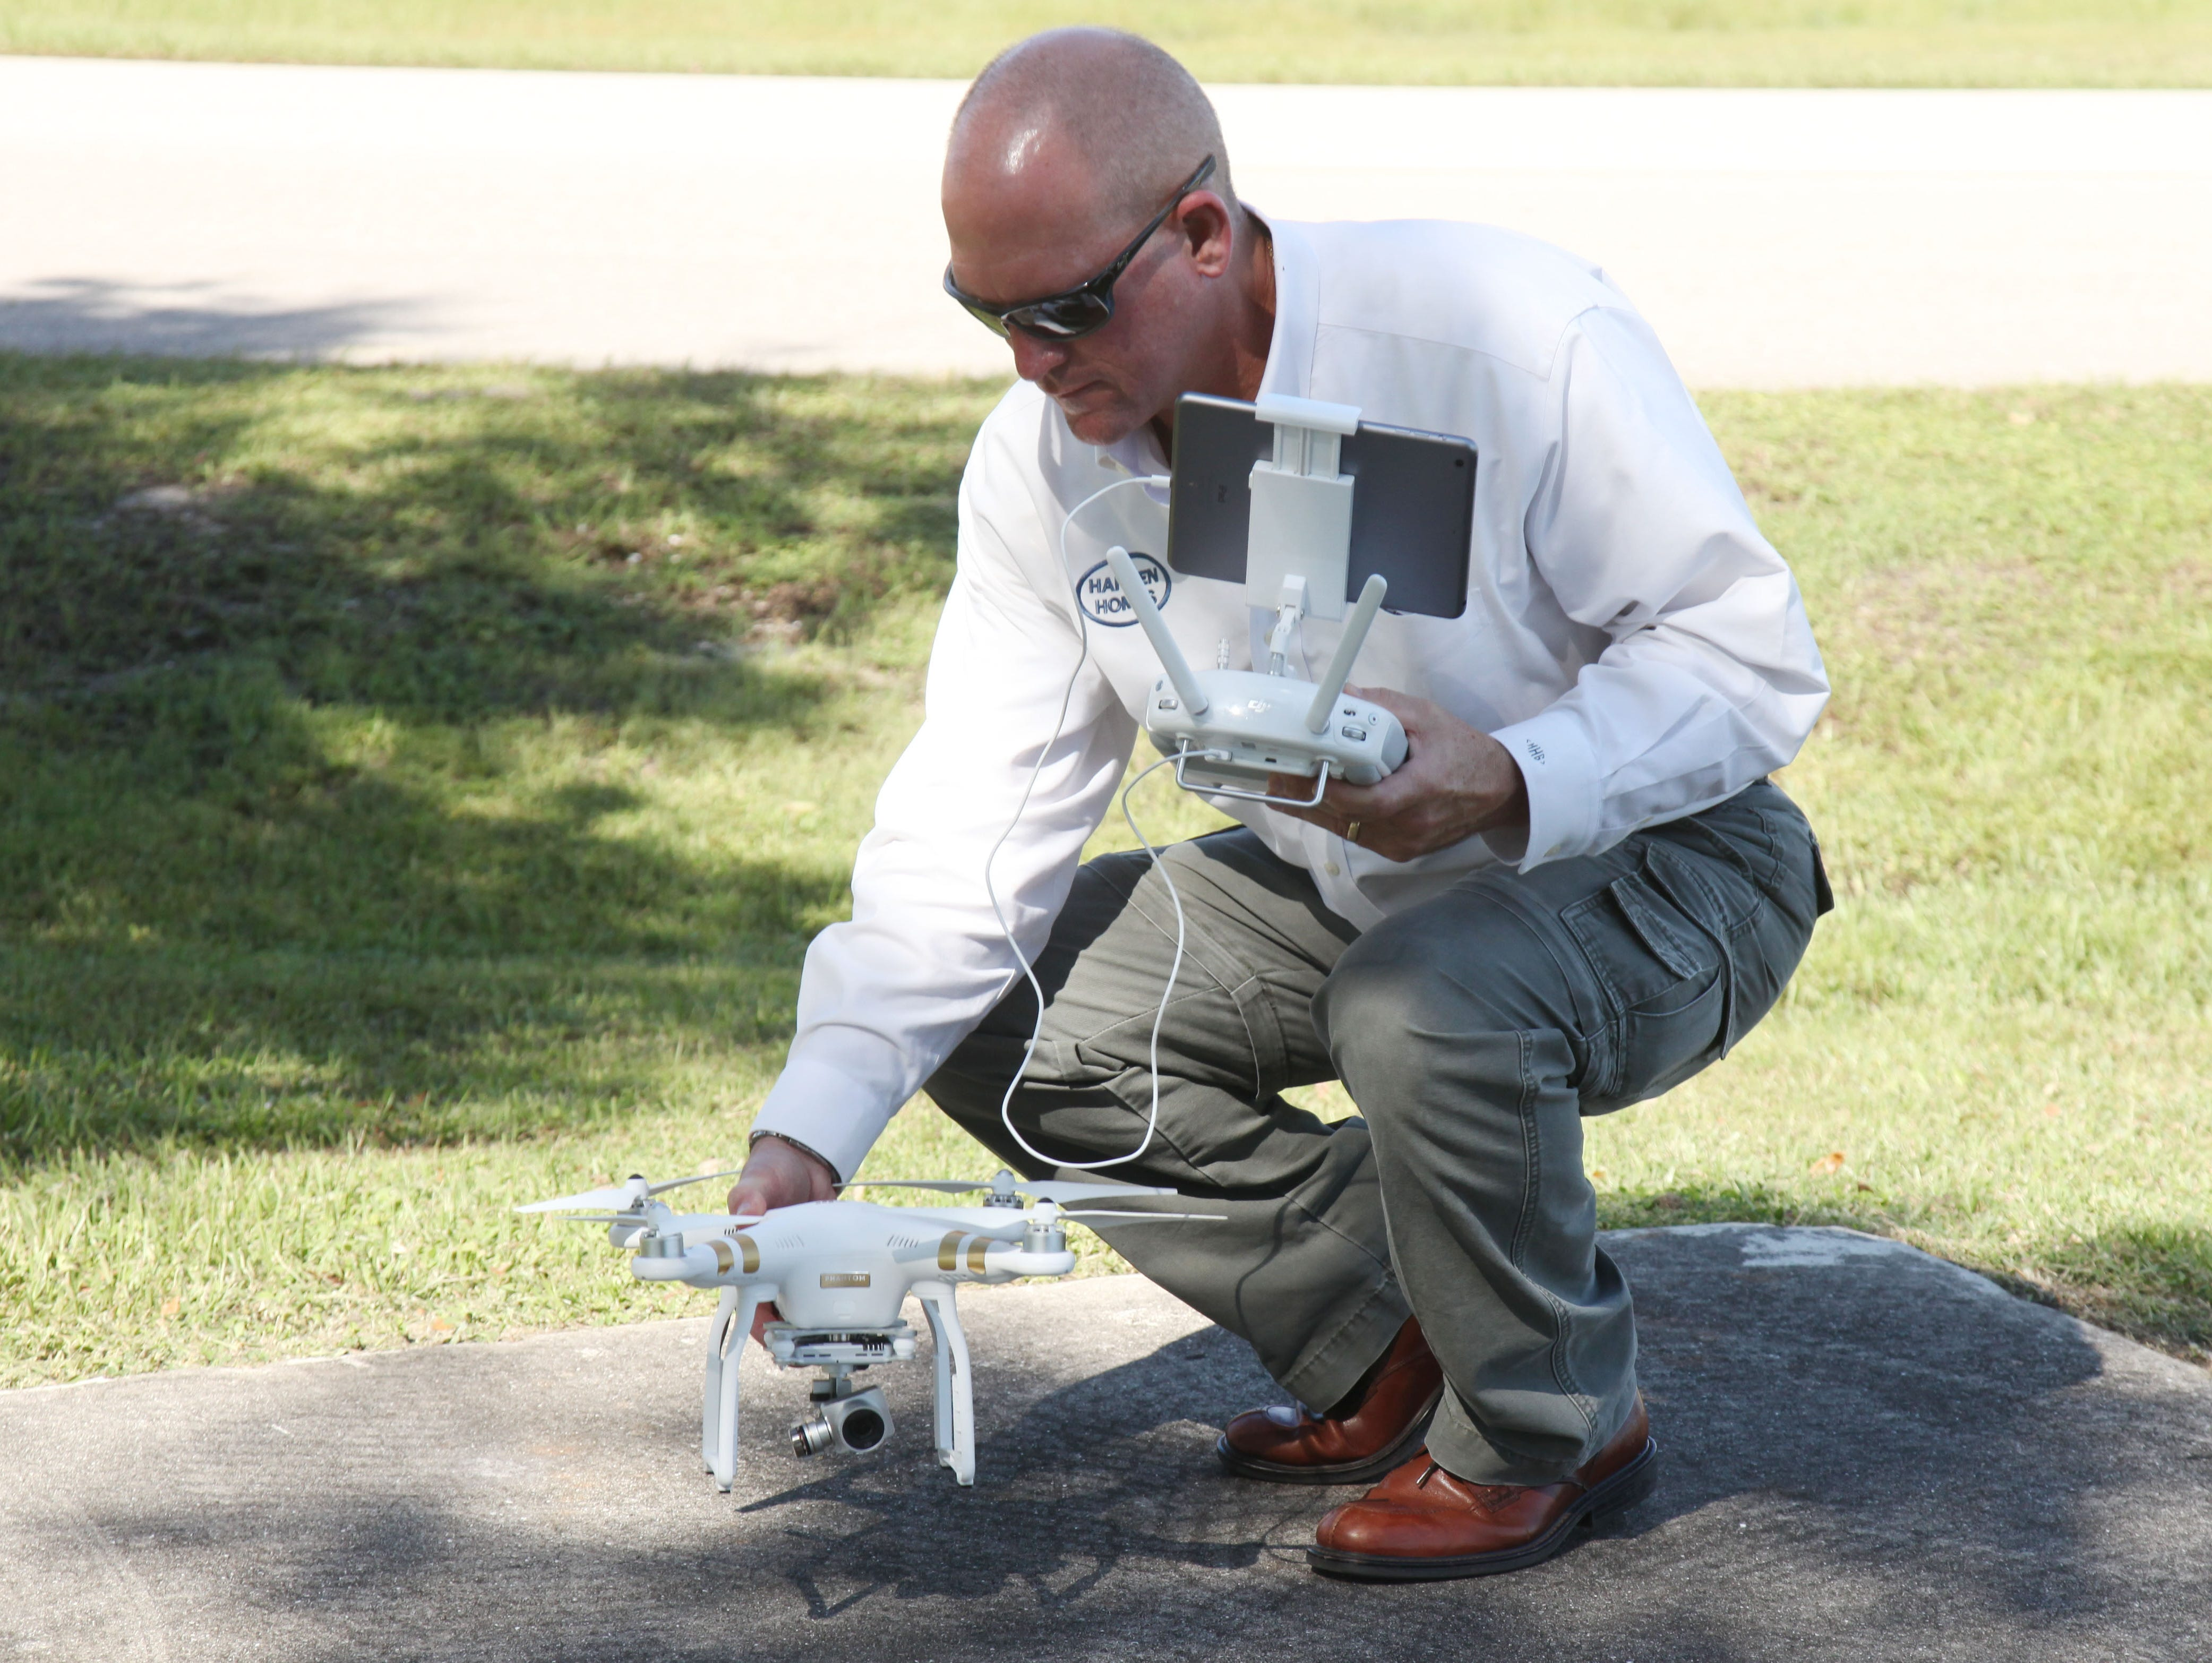 Mark Harden lands a DJI Pantom 3 Professional drone that he uses to record football games for Southwest Florida Christian Academy.